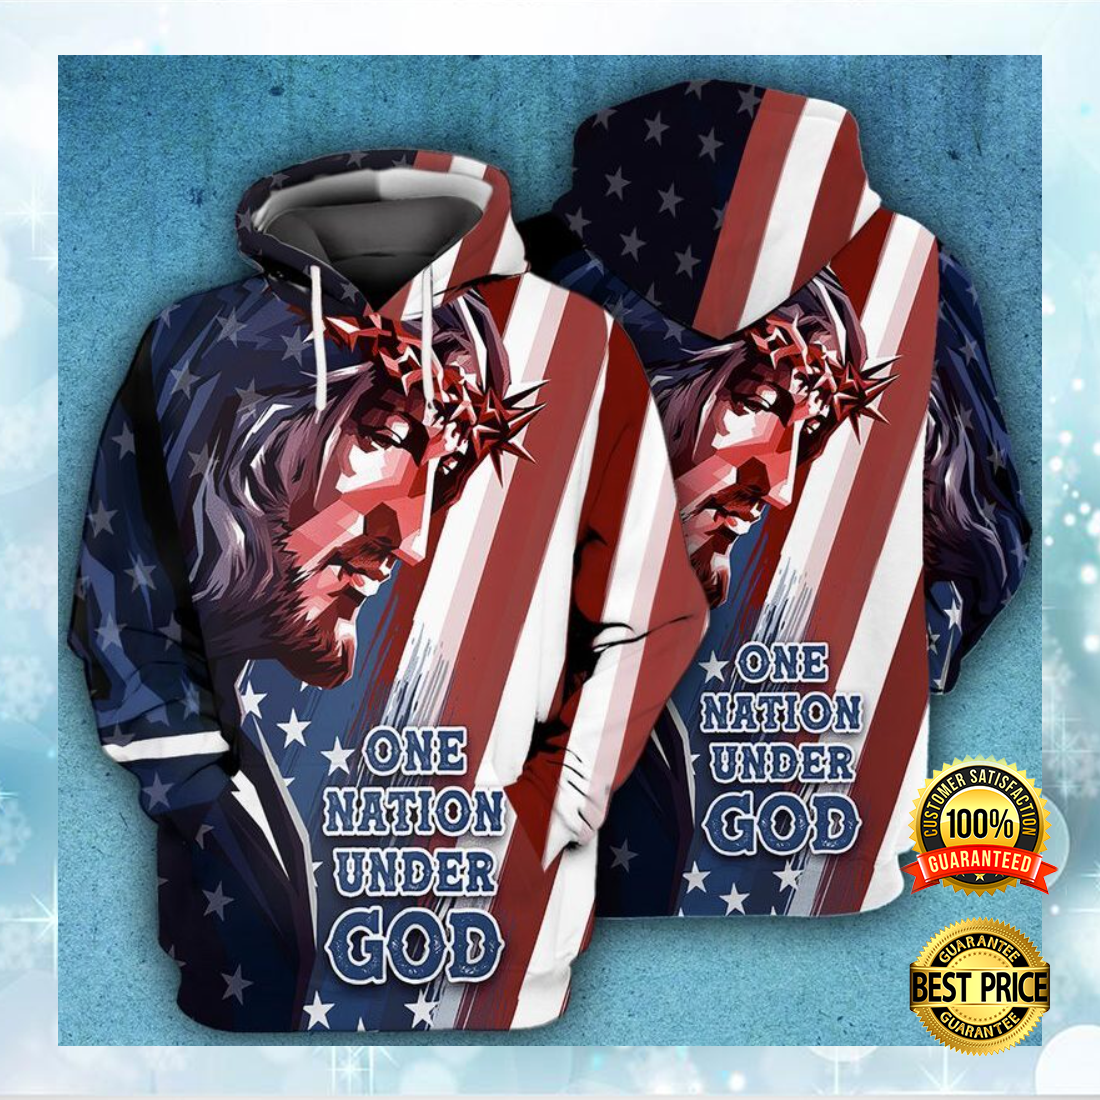 One nation under God American flag all over printed 3D hoodie 6